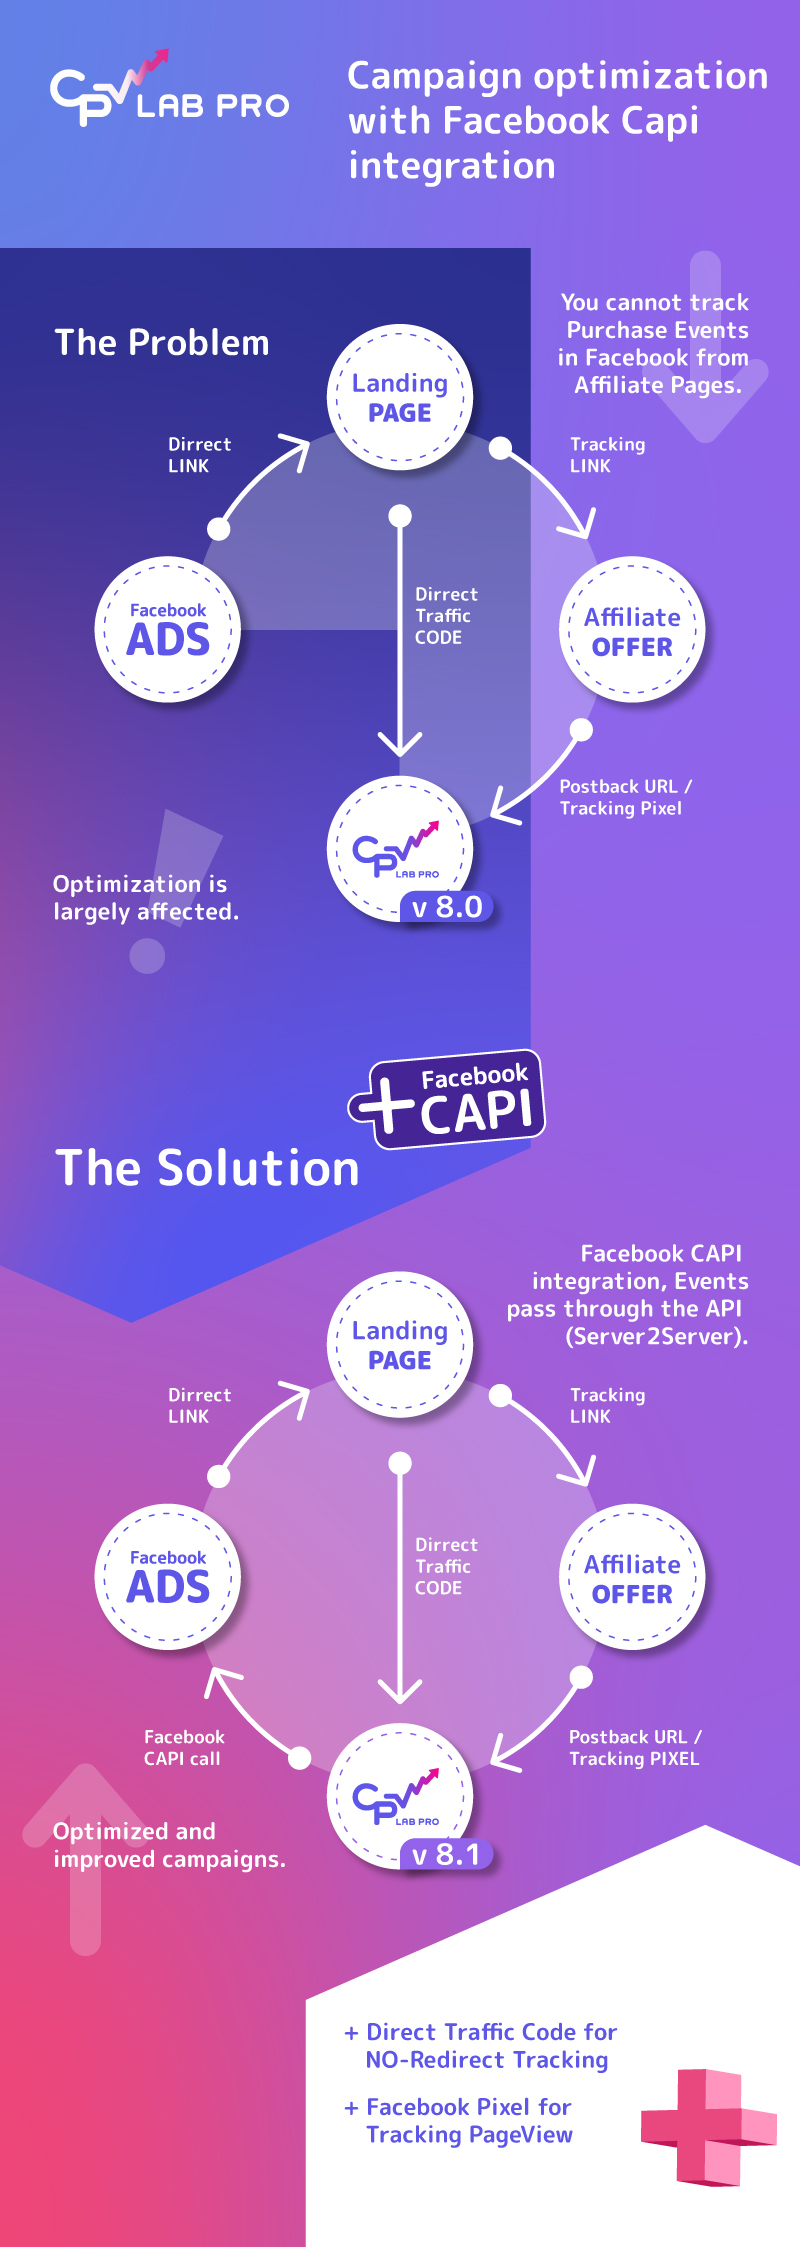 Campaign optimization with Facebook CAPI integration in CPV Lab PRO